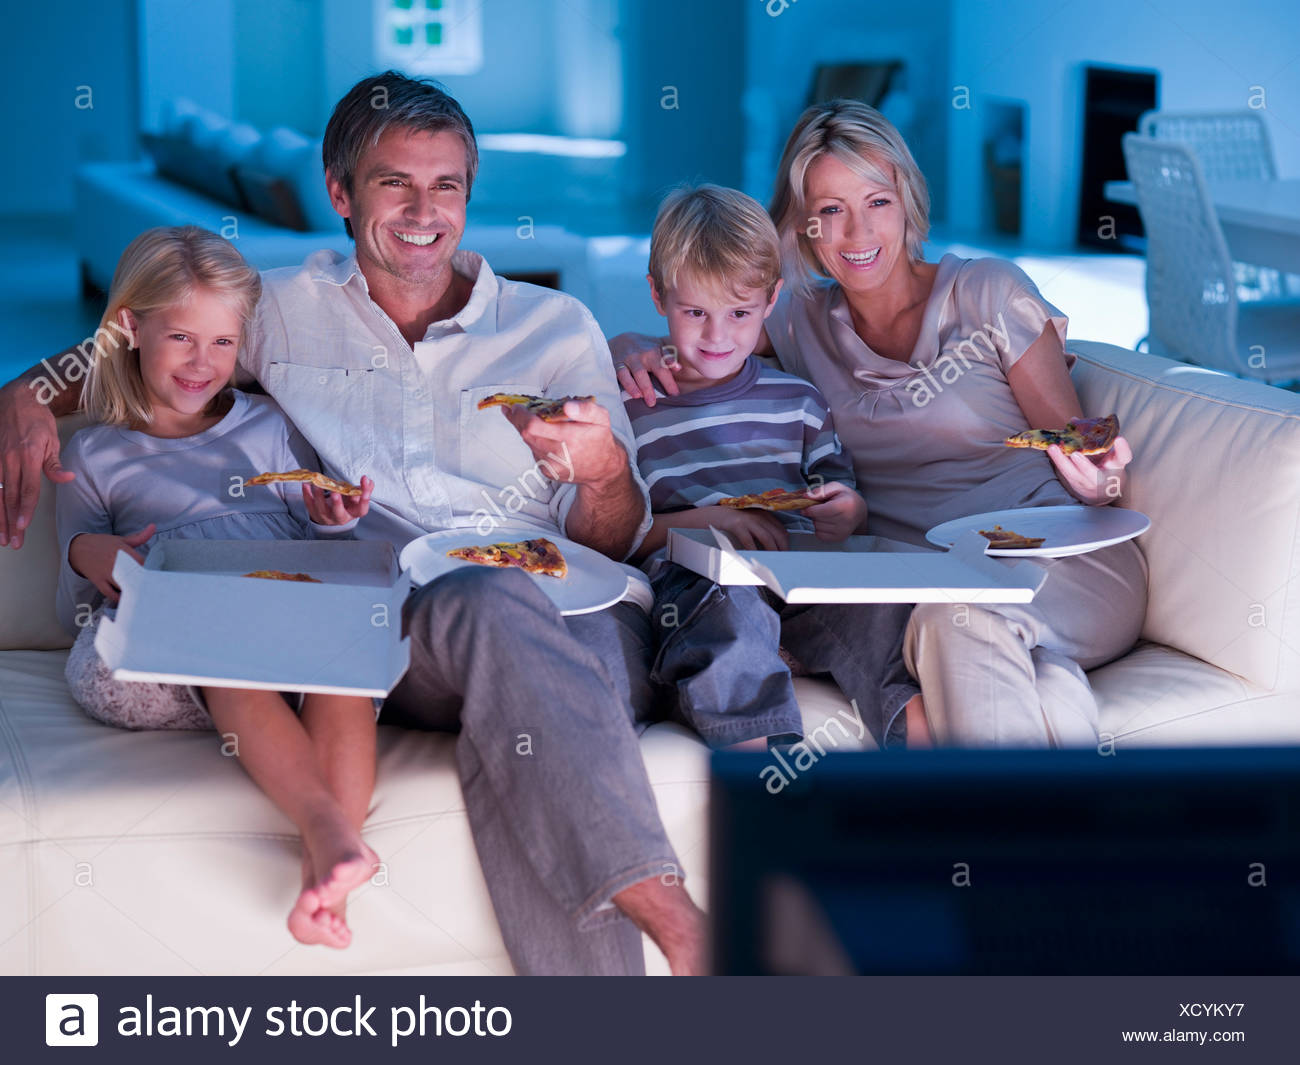 Family eating pizza and watching TV on sofa - Stock Image